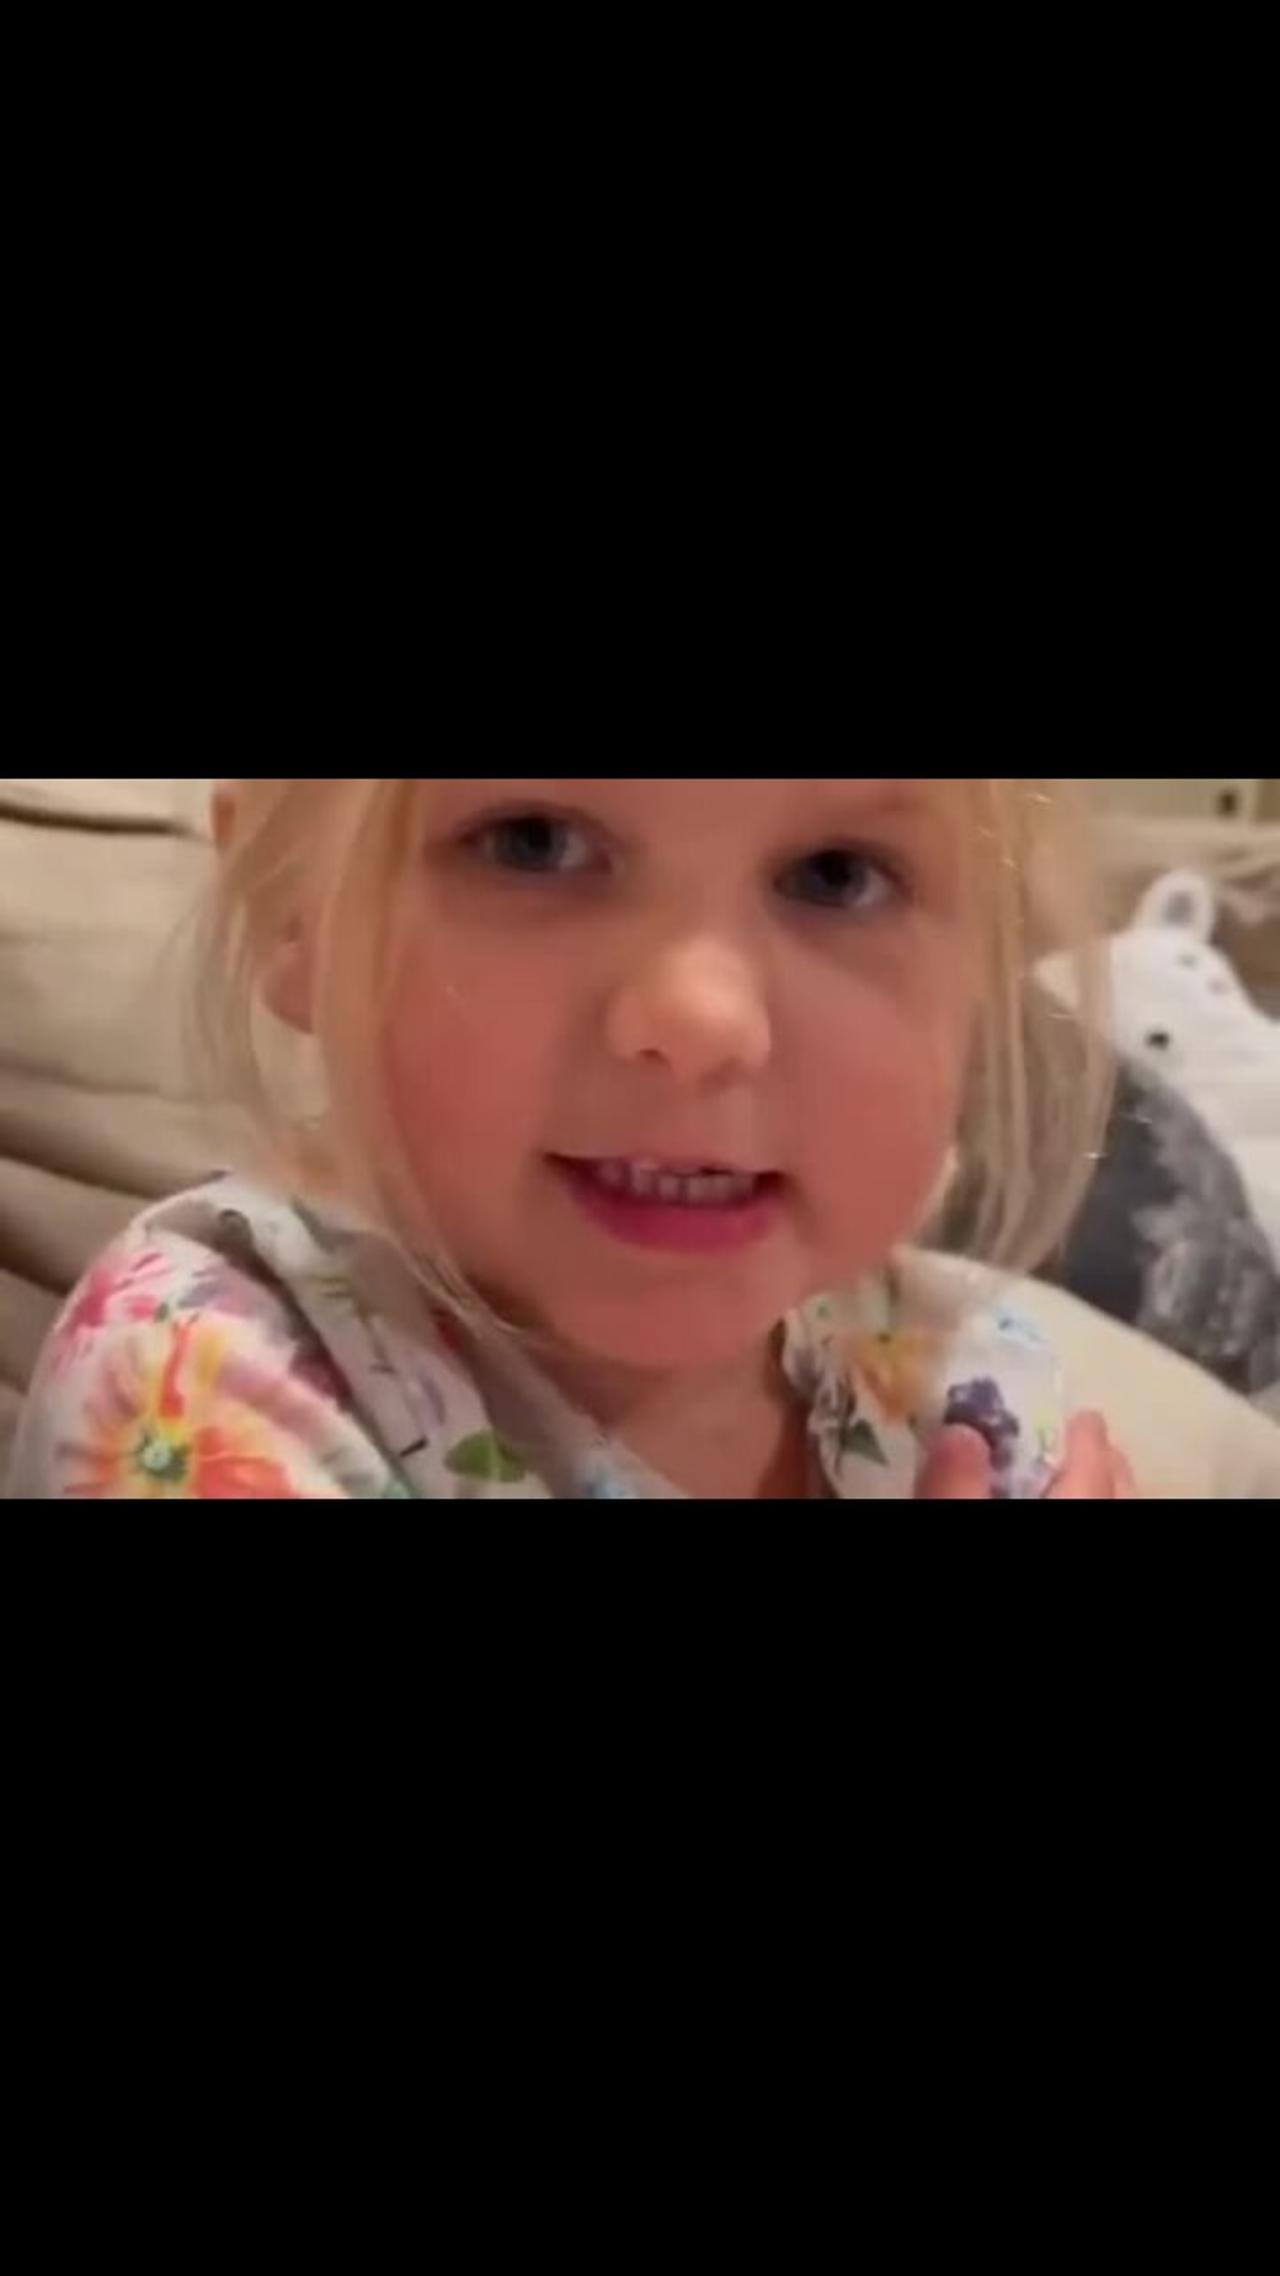 Polite little girl doesn't want to say bad words on camera